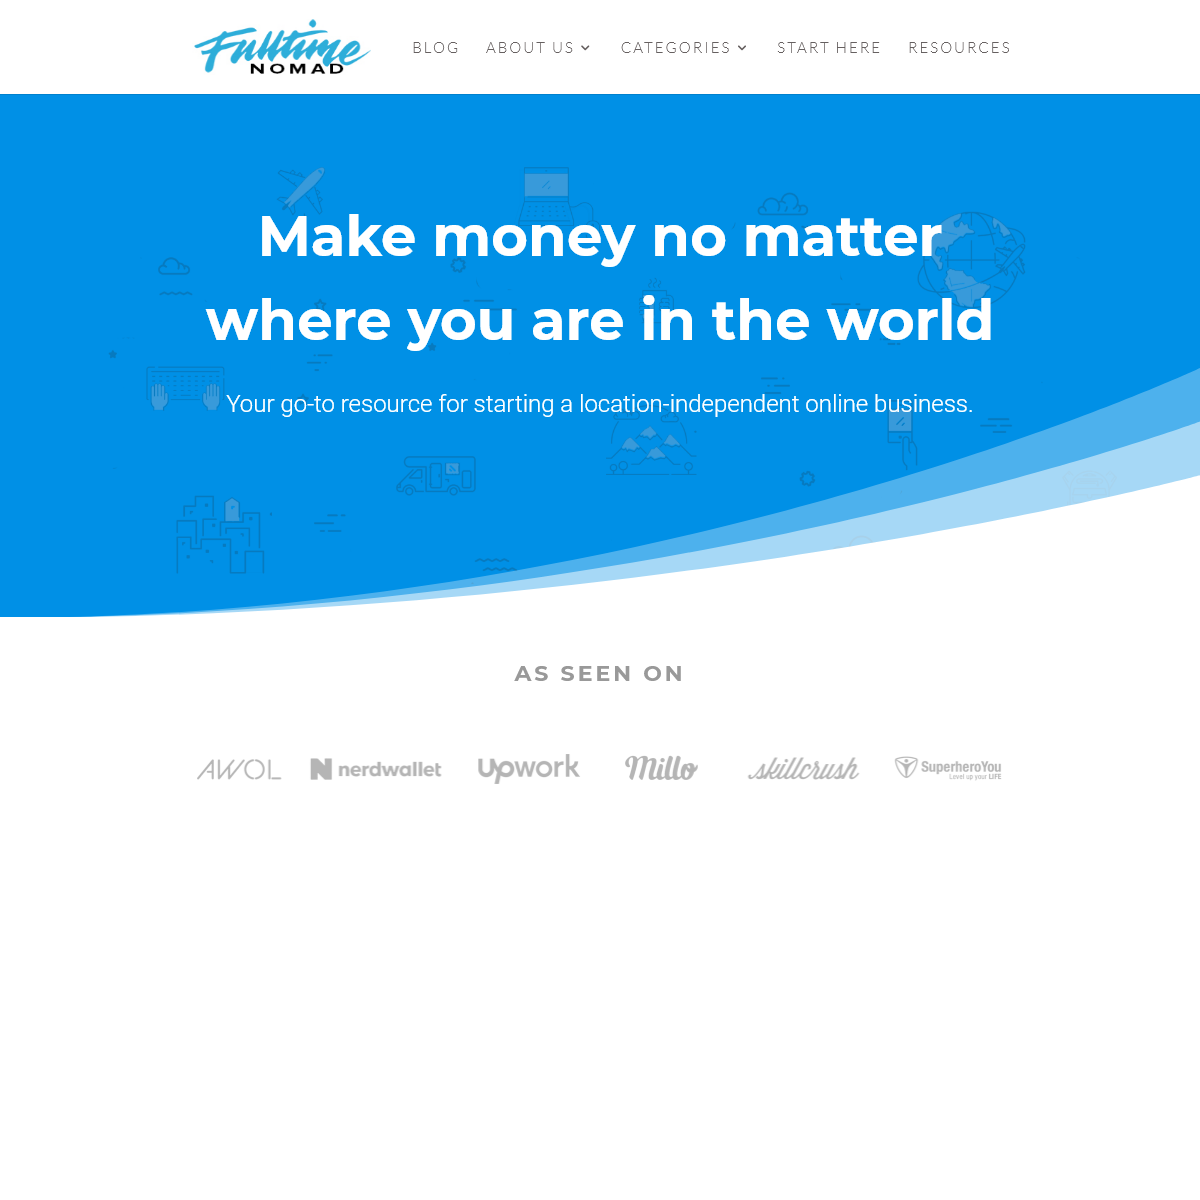 Make Money While Traveling. Travel jobs & Online Business - Fulltime Nomad